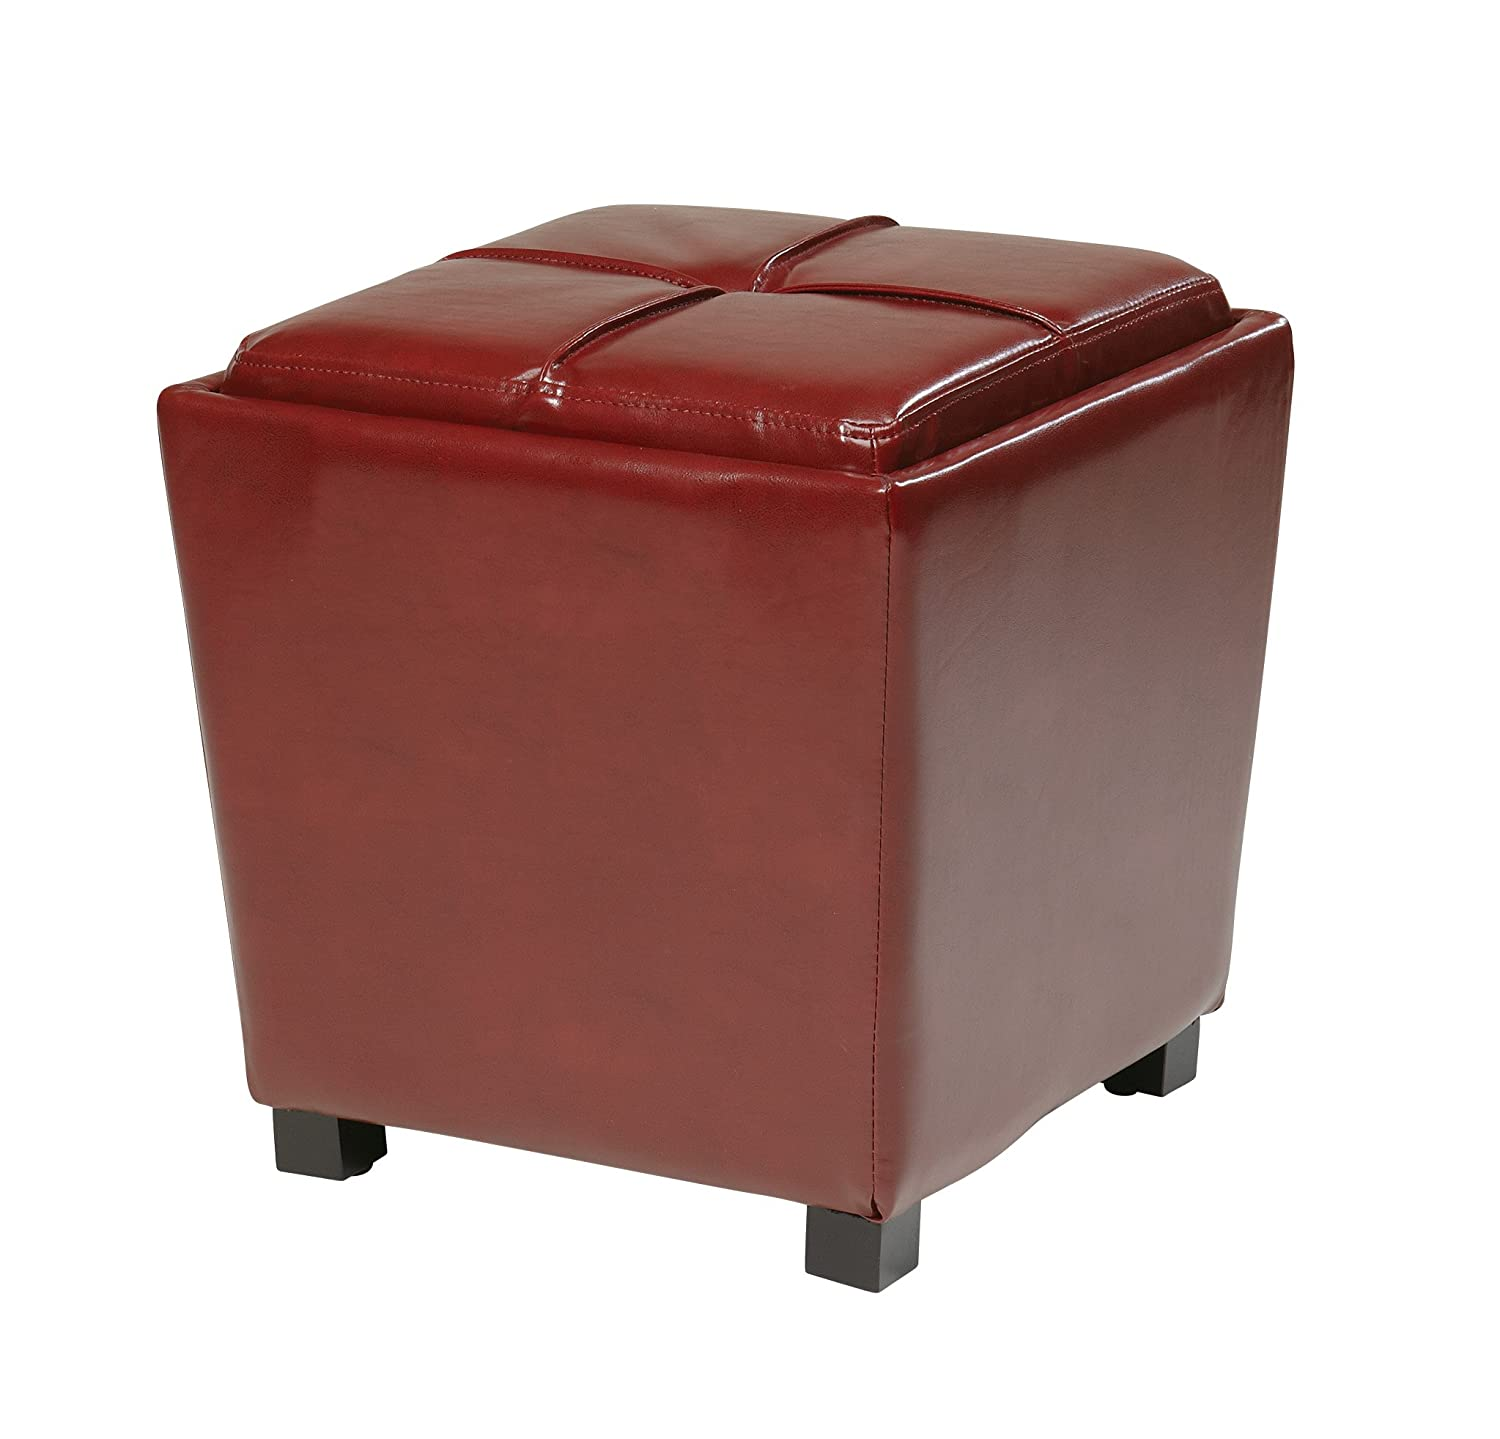 Amazon.com: OSP Designs Office Star Metro 2 Piece Storage Ottoman Cube Set  In Eco Leather, Red: Kitchen U0026 Dining